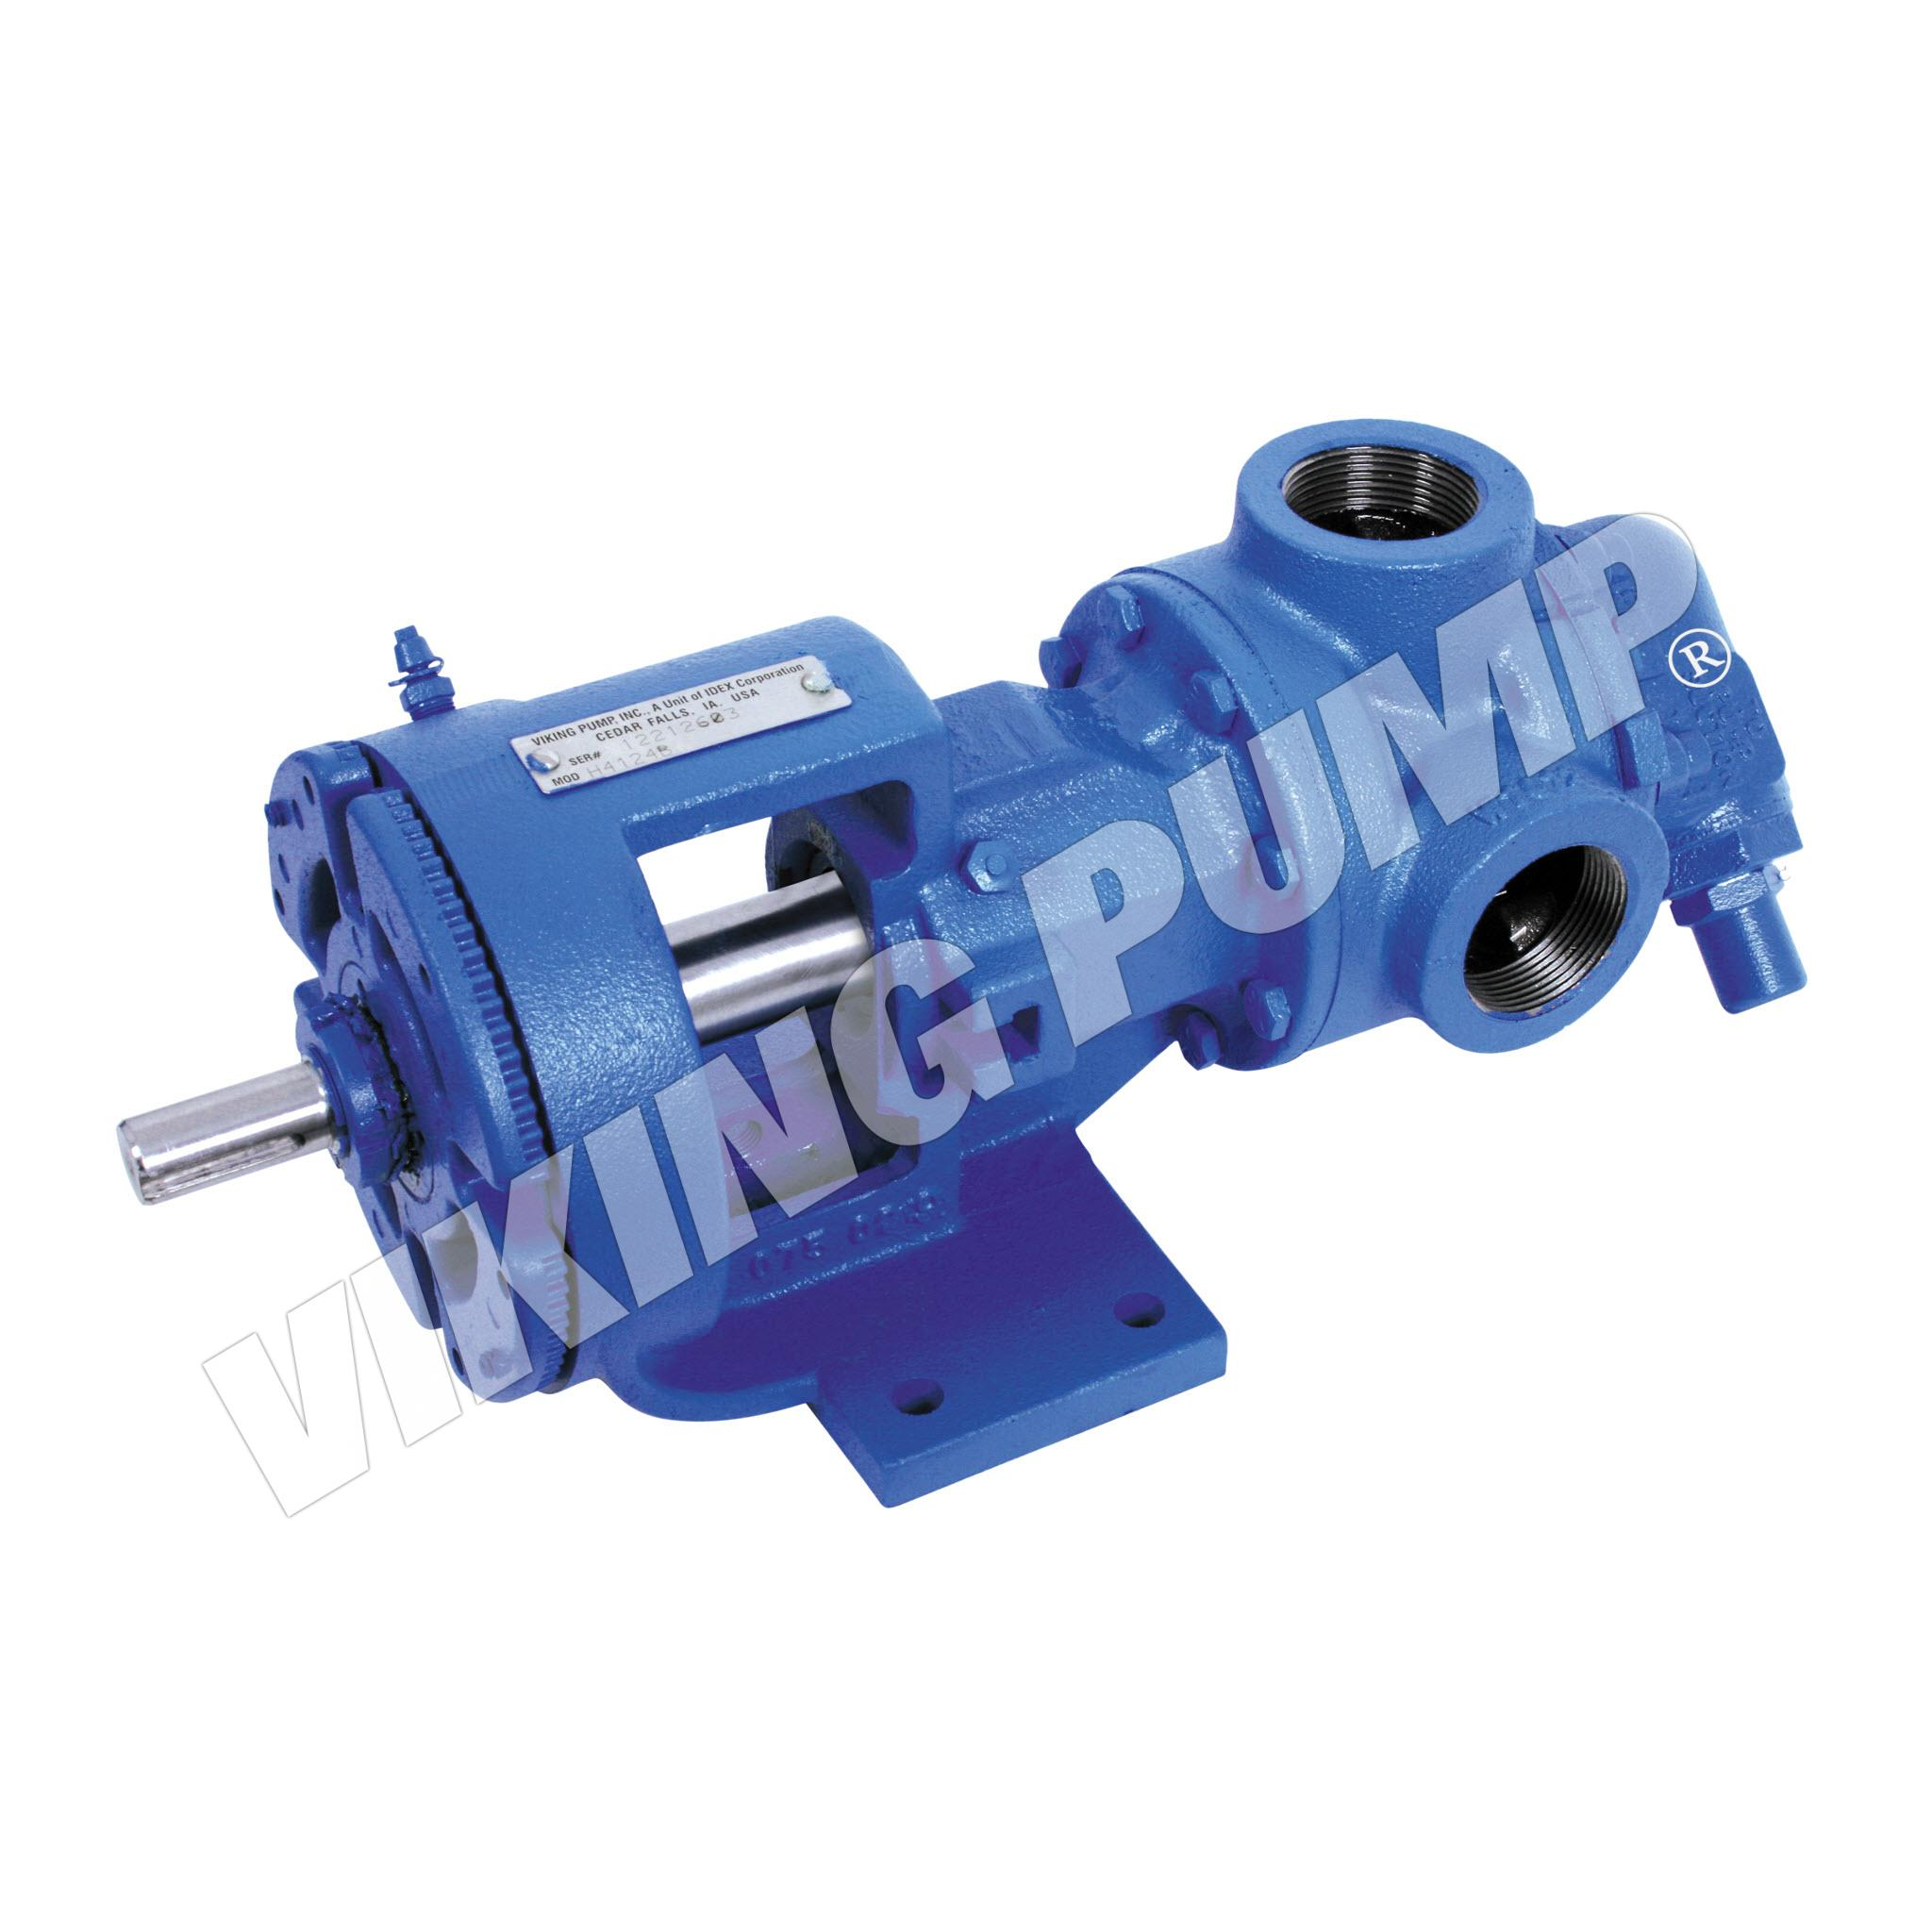 Model H4124B, Foot Mounted, Mechanical Seal, Relief Valve Pump